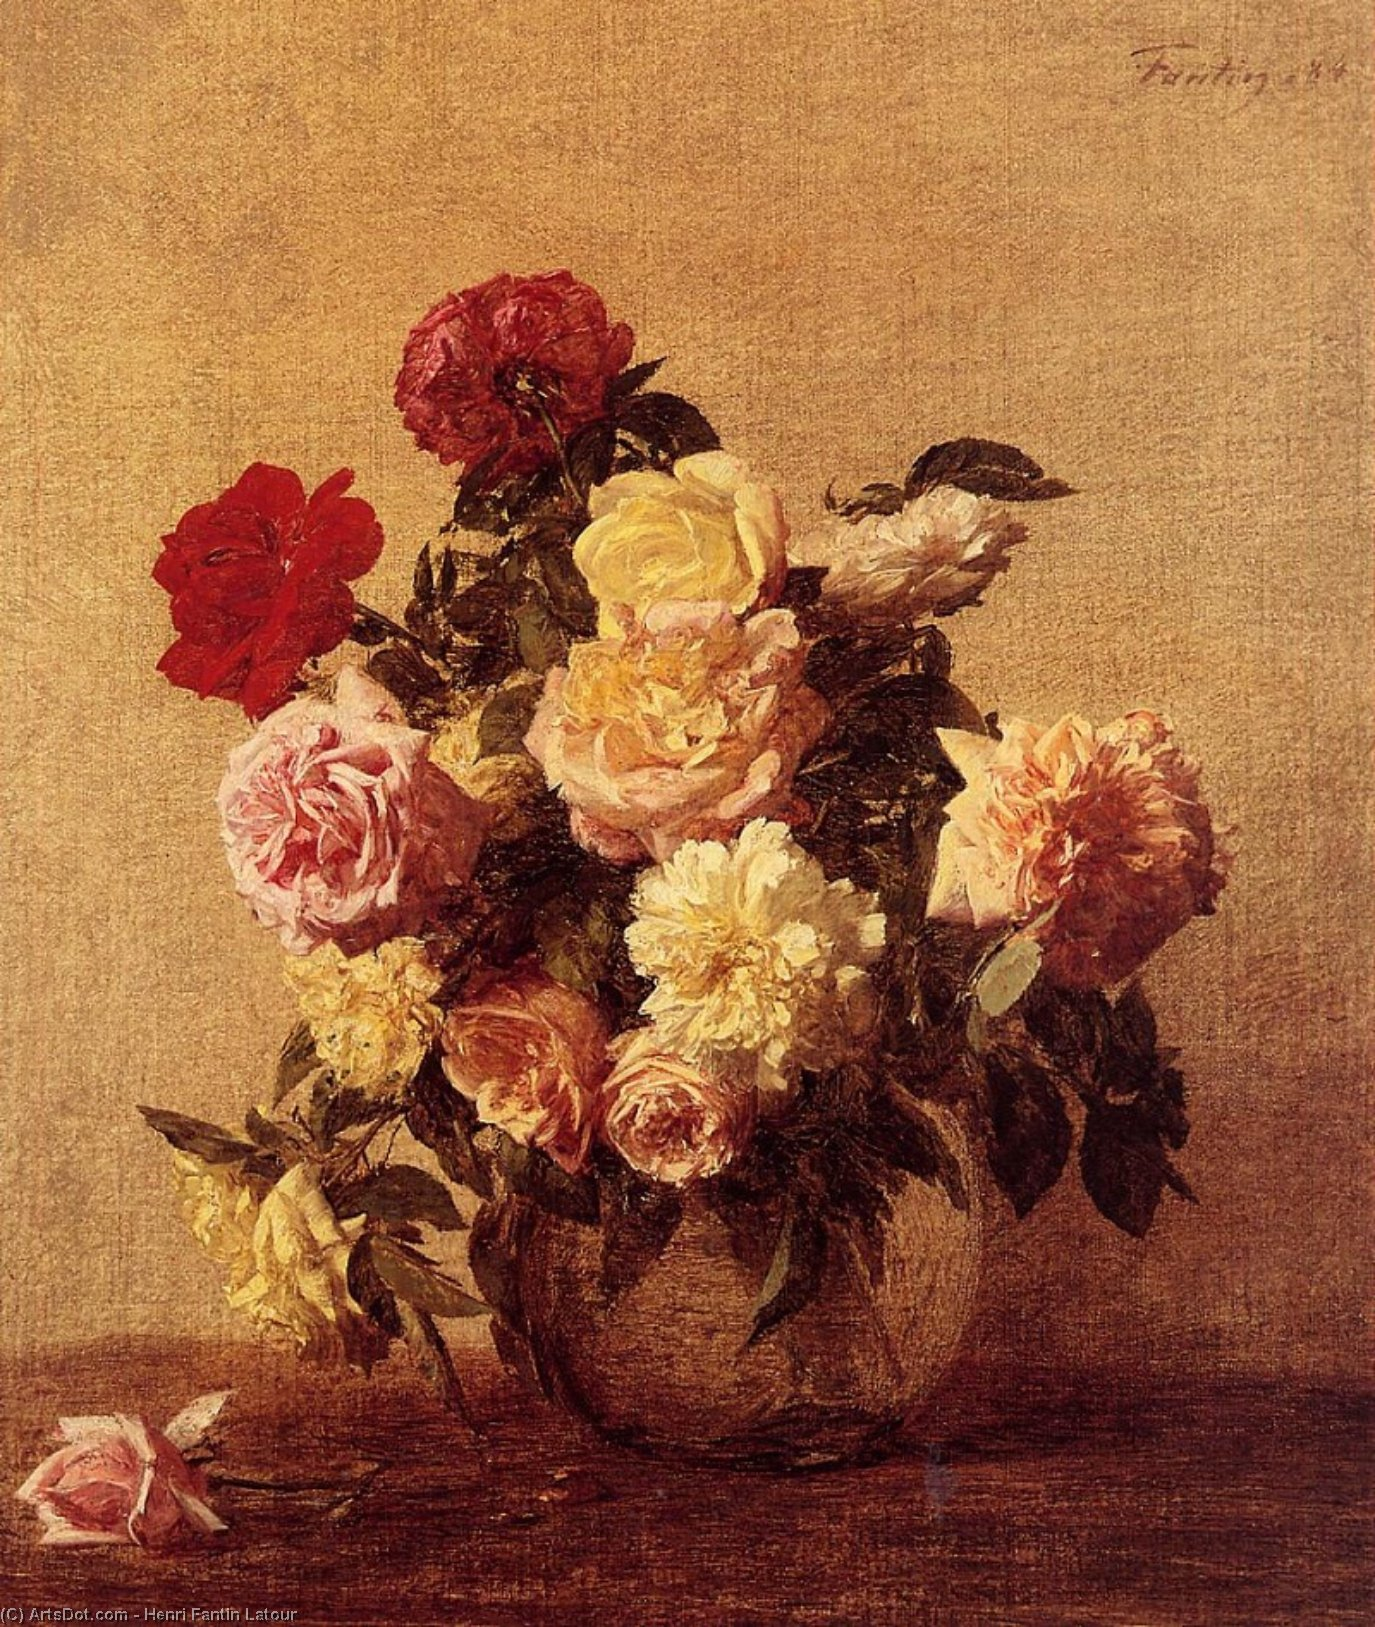 Roses 11, Oil by Henri Fantin Latour (1836-1904, France)